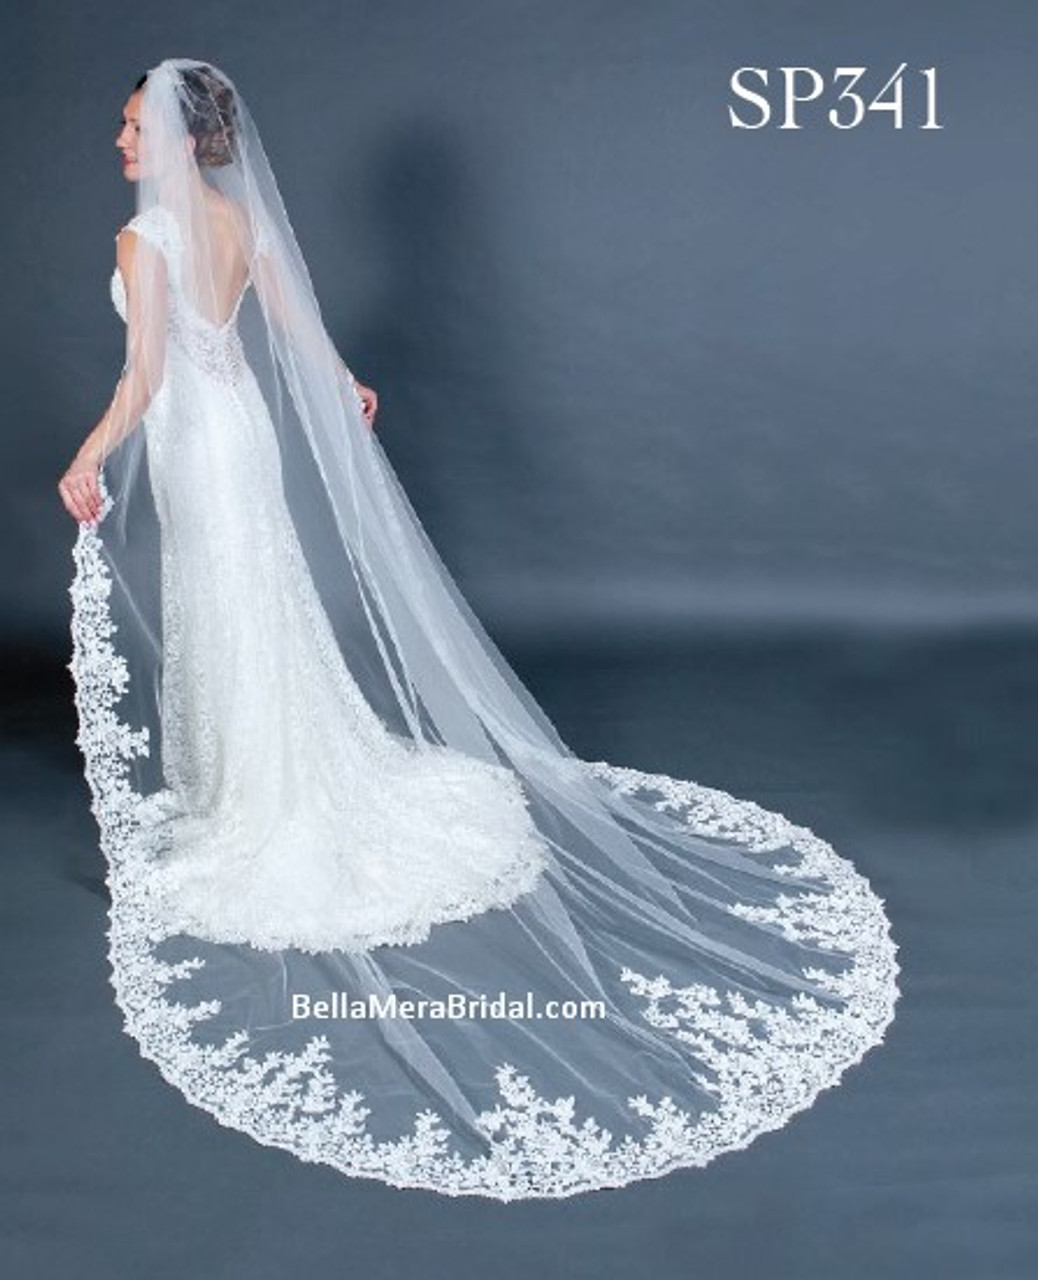 "Giselle Bridal Veil Style SP341 - Unbeaded Venice Lace - 108"" Long"